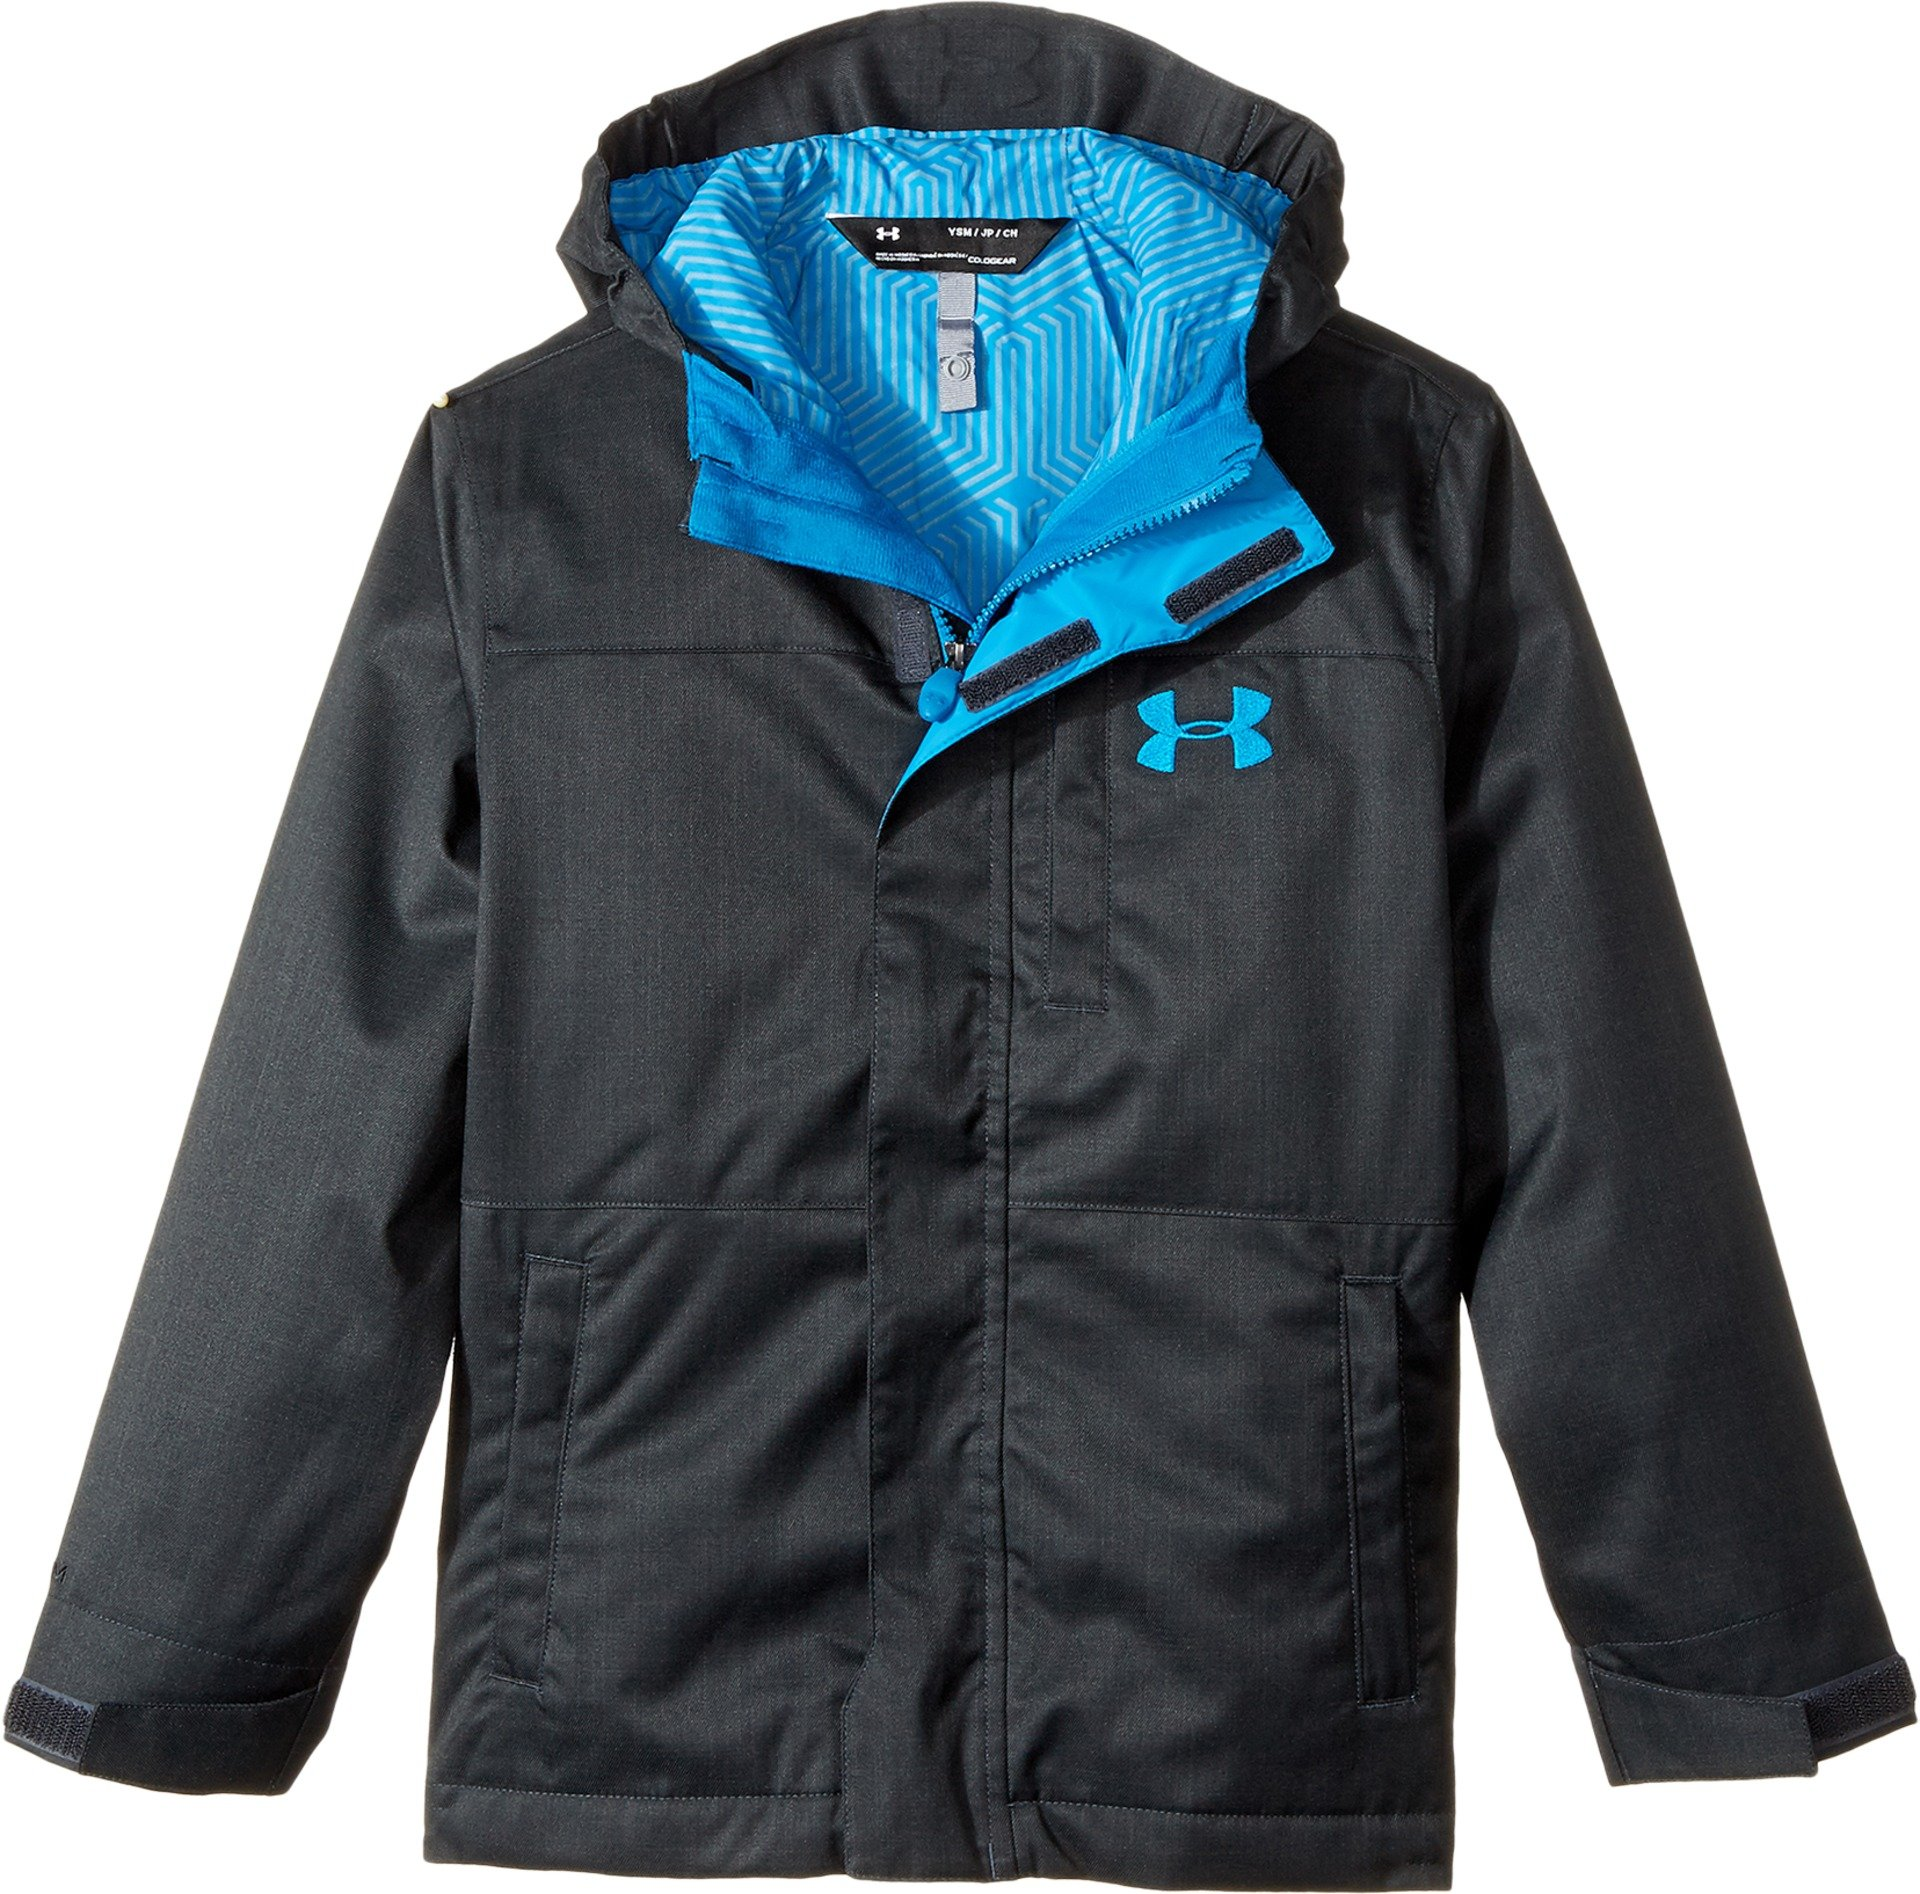 Under Armour Boys' Storm Wildwood 3-in-1 Jacket, Anthracite/Cruise Blue, Youth Large by Under Armour